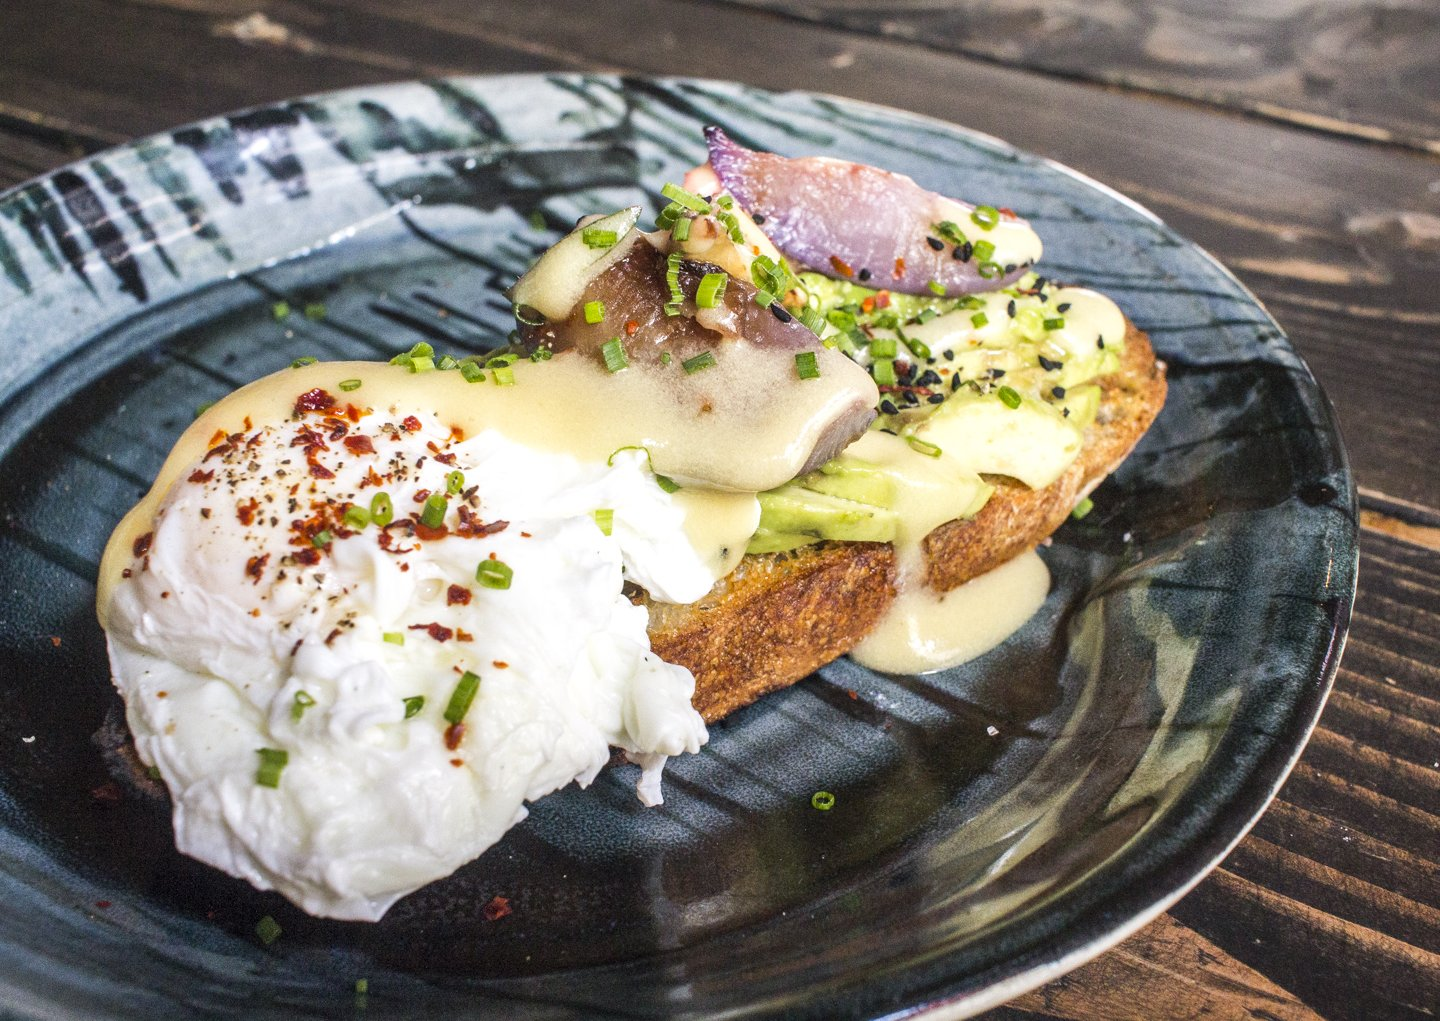 Poached Egg atop Avocado Toast. YUM. #OaklandTeaParlor. We're waiting for you ;) #foodporn https://t.co/MQGupd7c6f